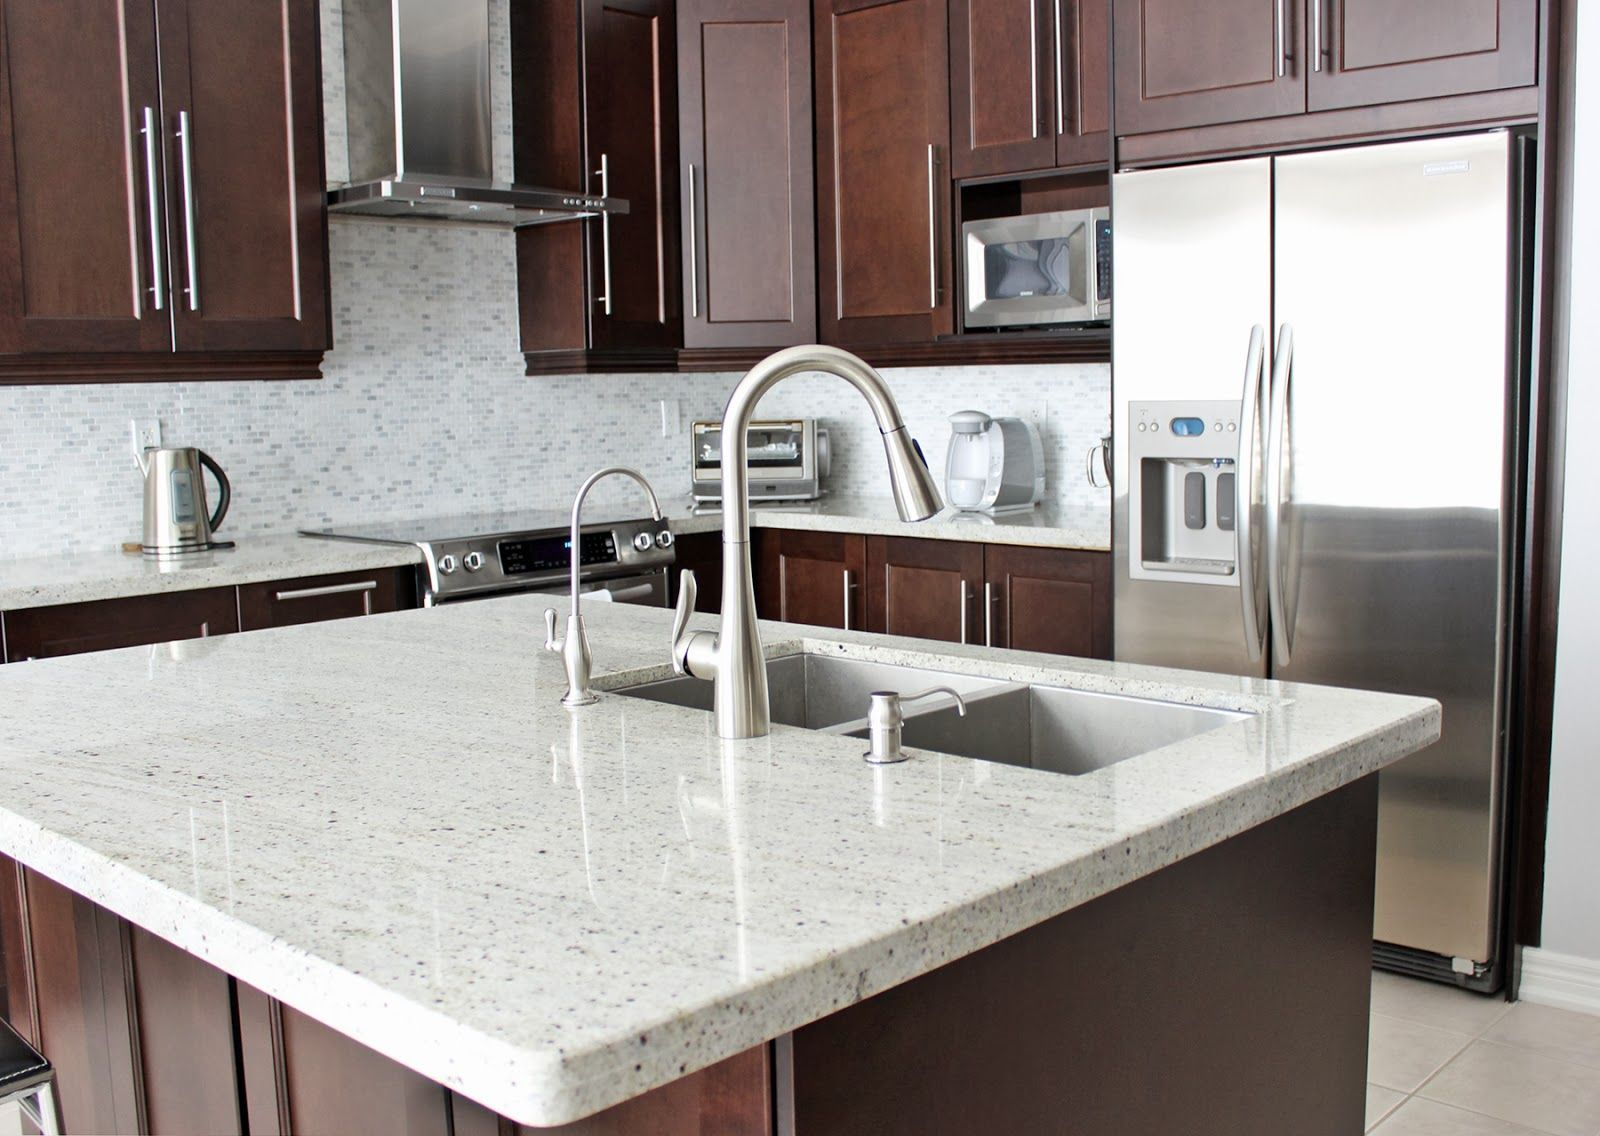 Maple Kitchen Cabinets With Marble Countertops Moen 39s Arbor One Handle Kitchen Faucet Dark Maple Kitchen